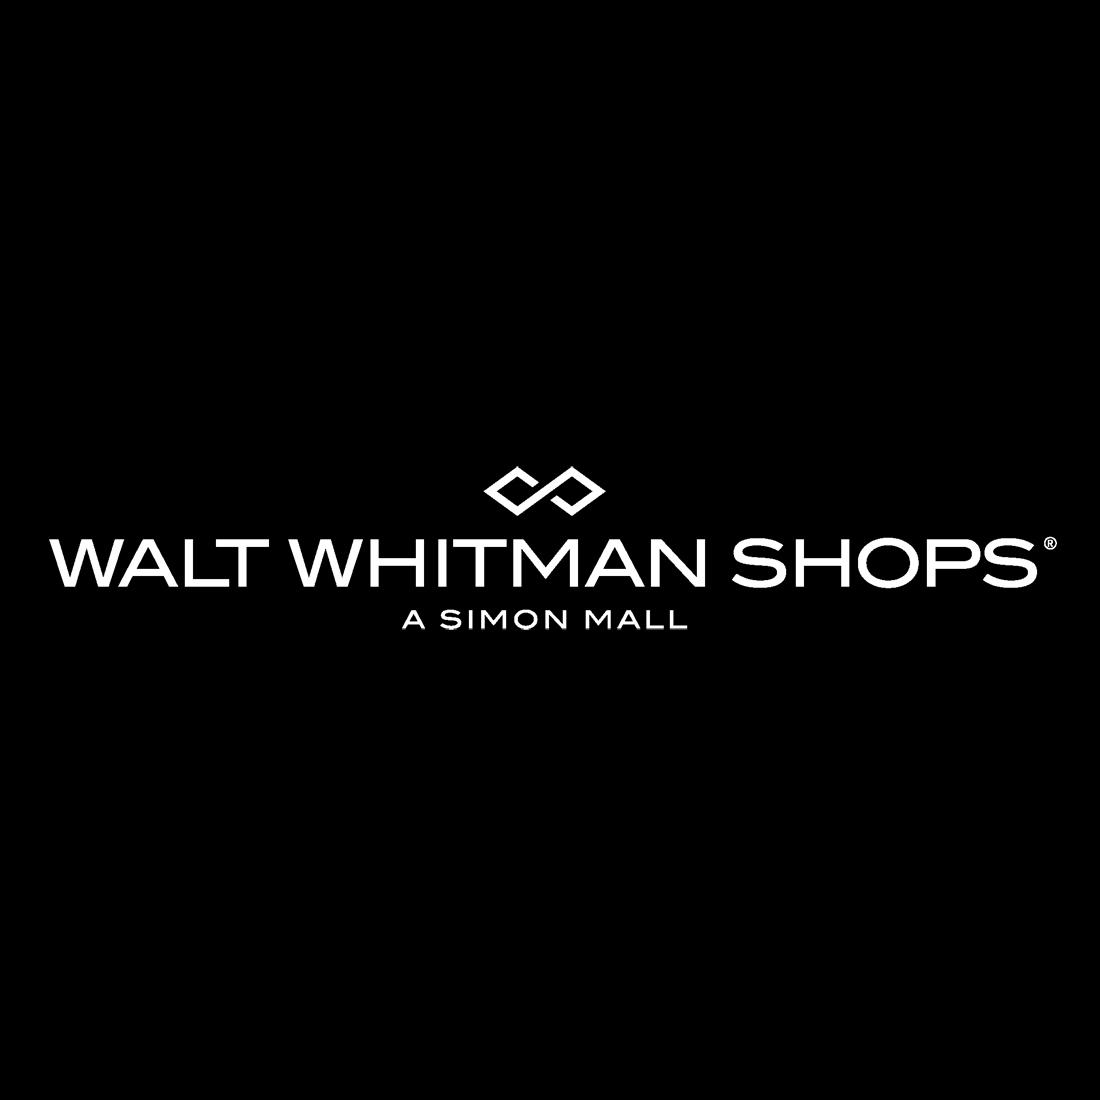 Walt Whitman Shops - Huntington Station, NY - Factory Outlet Stores